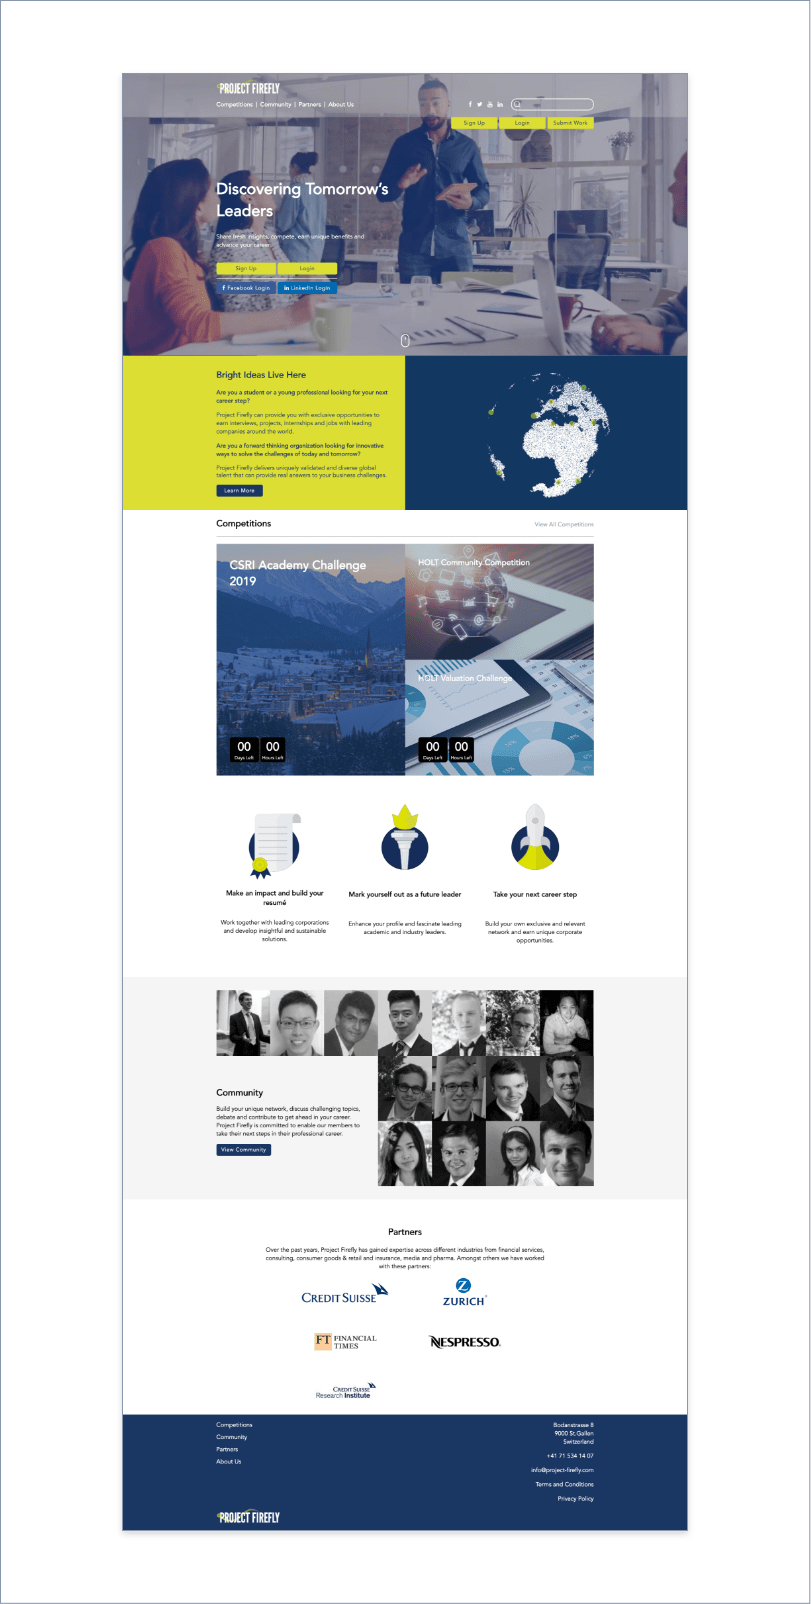 recruitment platform, ICON Worldwide portfolio, Project Firefly